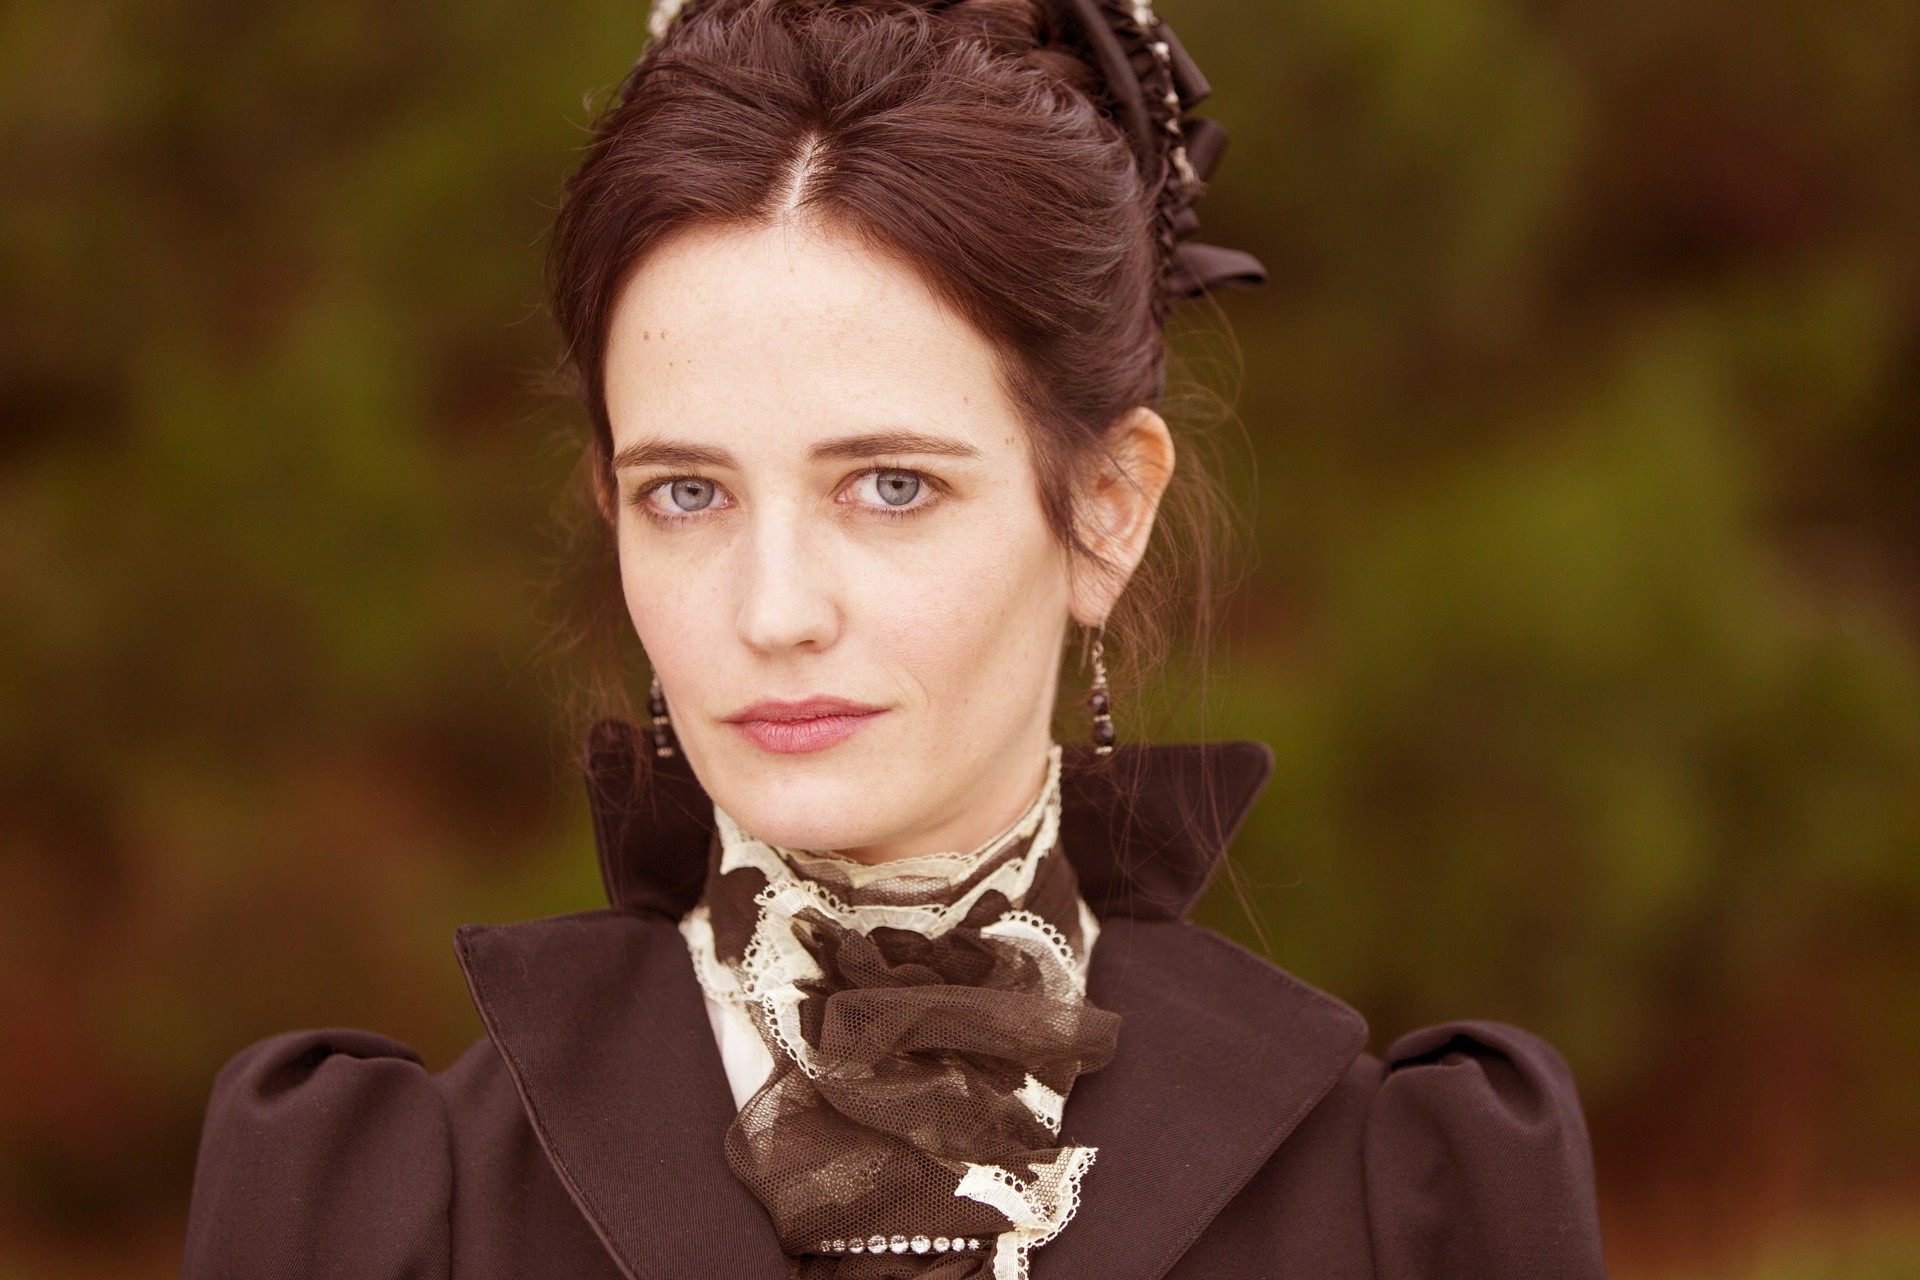 Fantastic Eva Green Full Cover Dress Beauty Face Look Still Desktop Free Mobile Background Images Hd